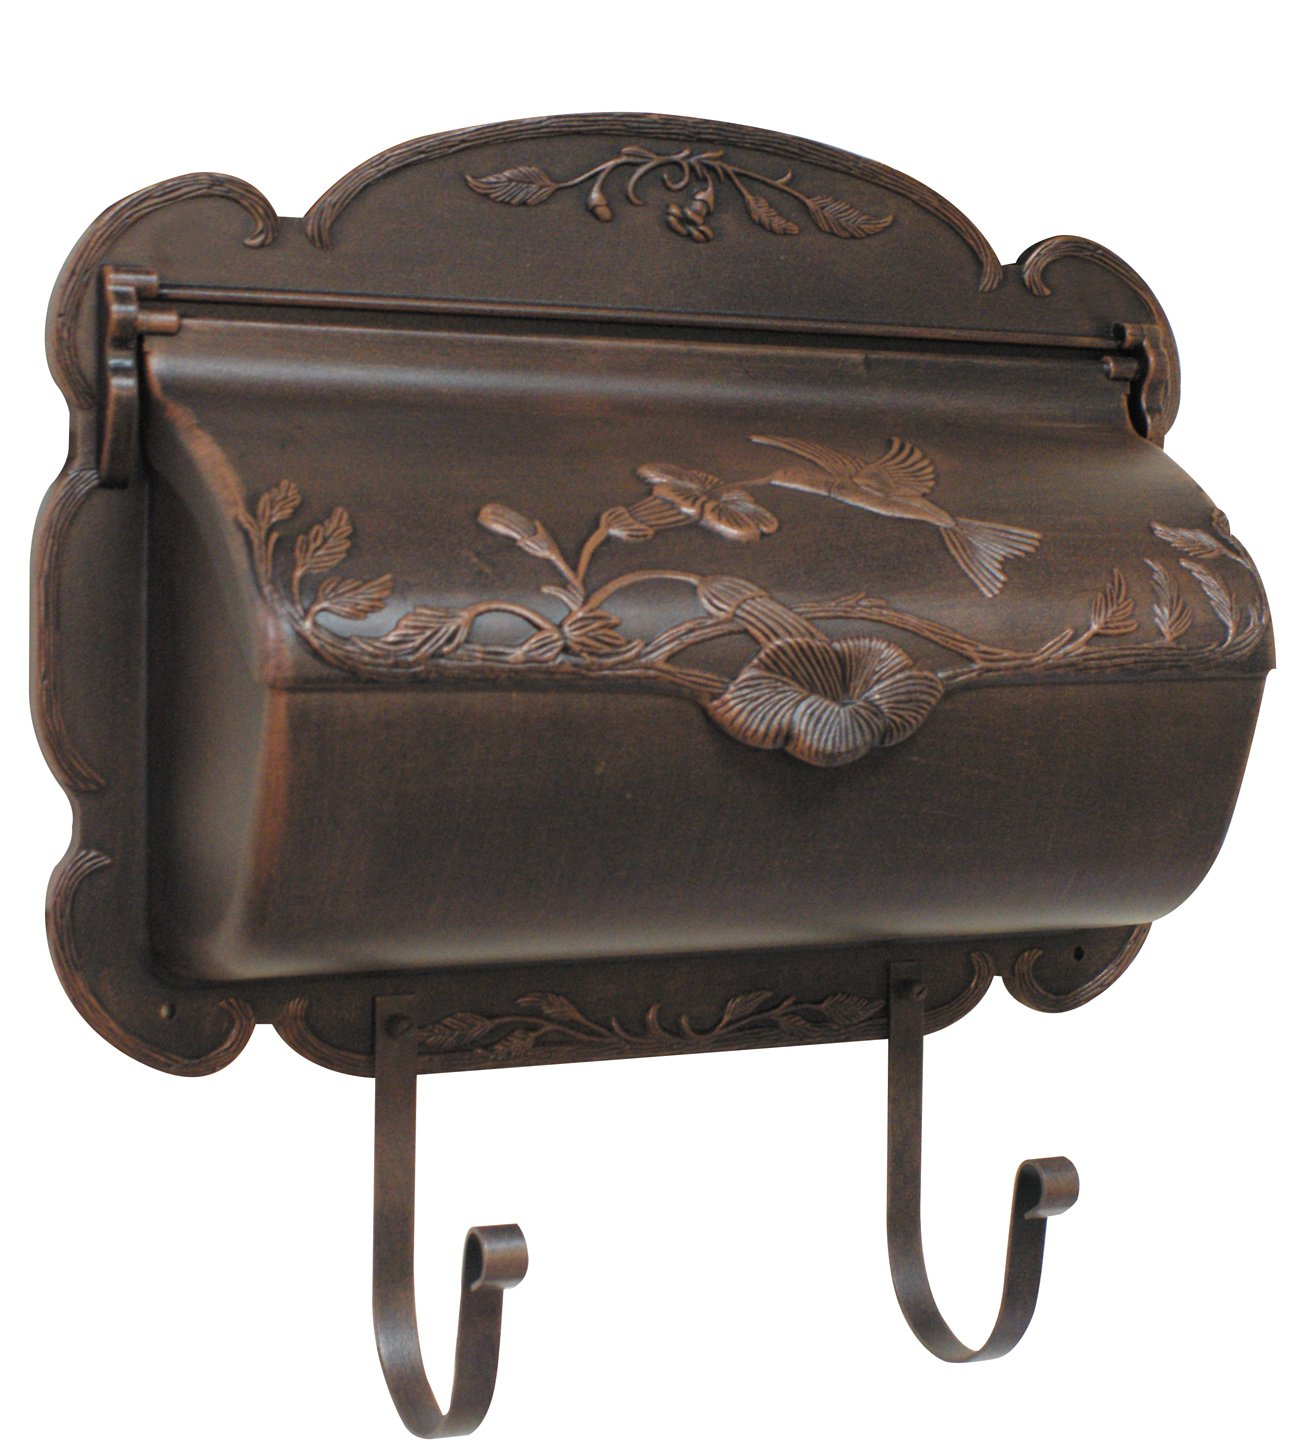 Special Lite Products SHB-1004-CP Hummingbird Horizontal Mailbox Copper by Special Lite Products (Image #1)